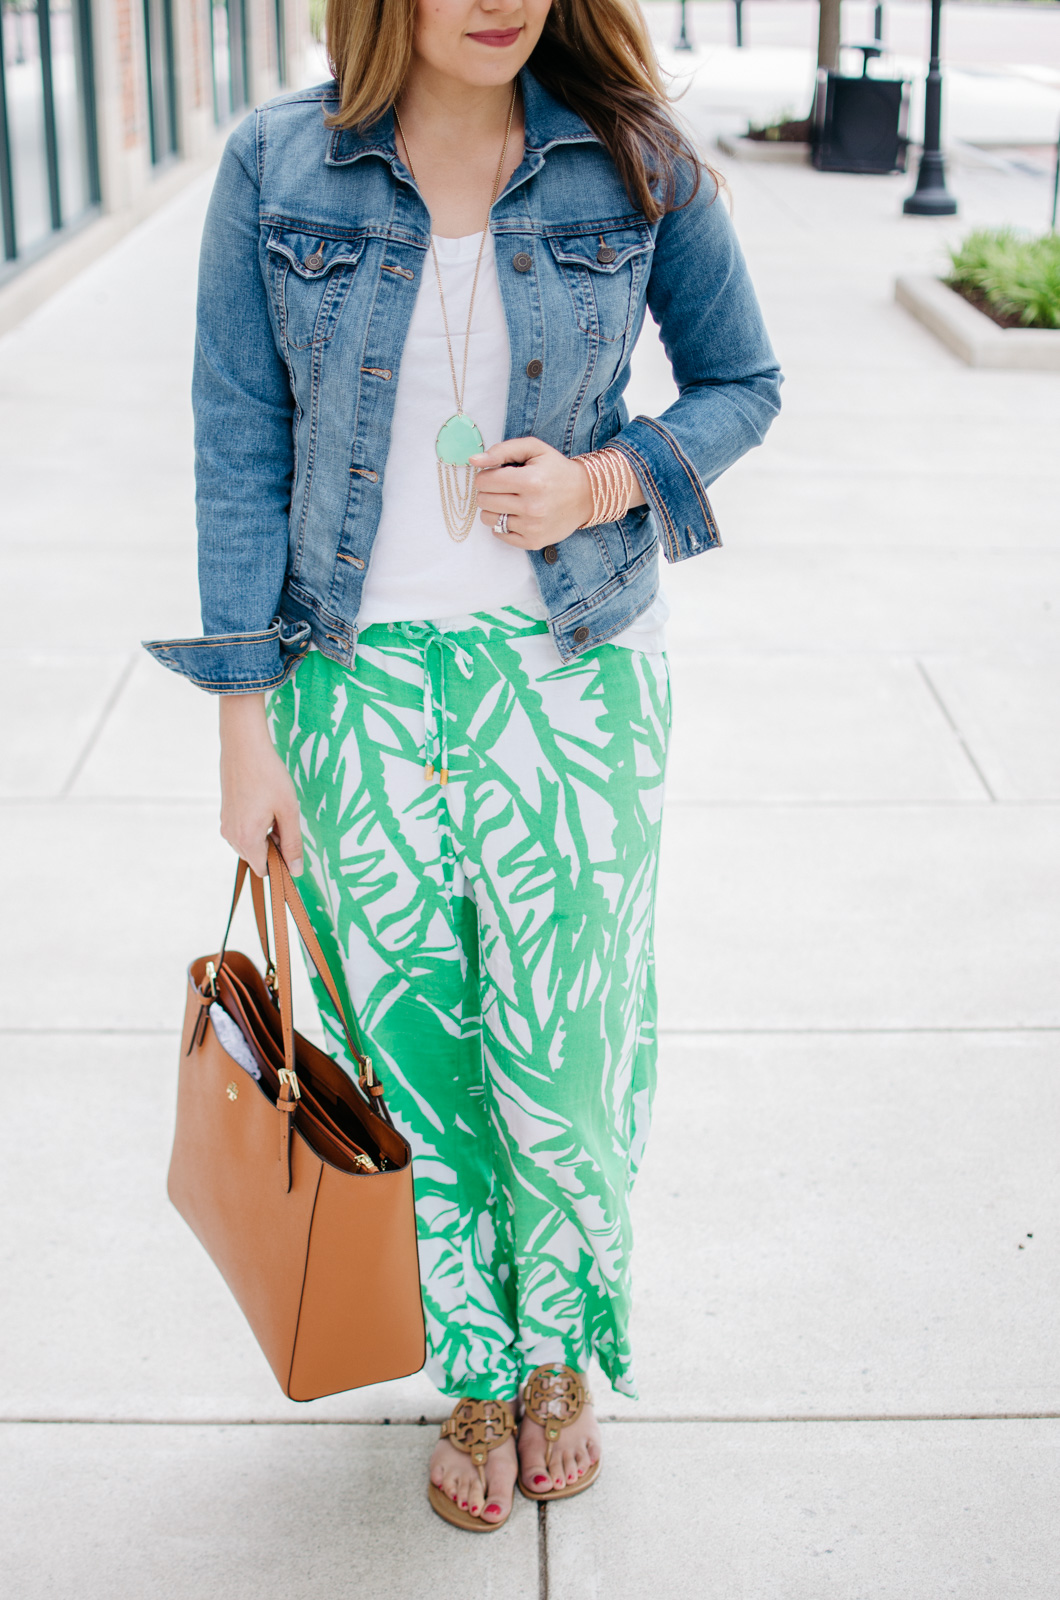 how wear printed pants - palm printed outfit | For more Spring and Summer outfits, head to bylaurenm.com!